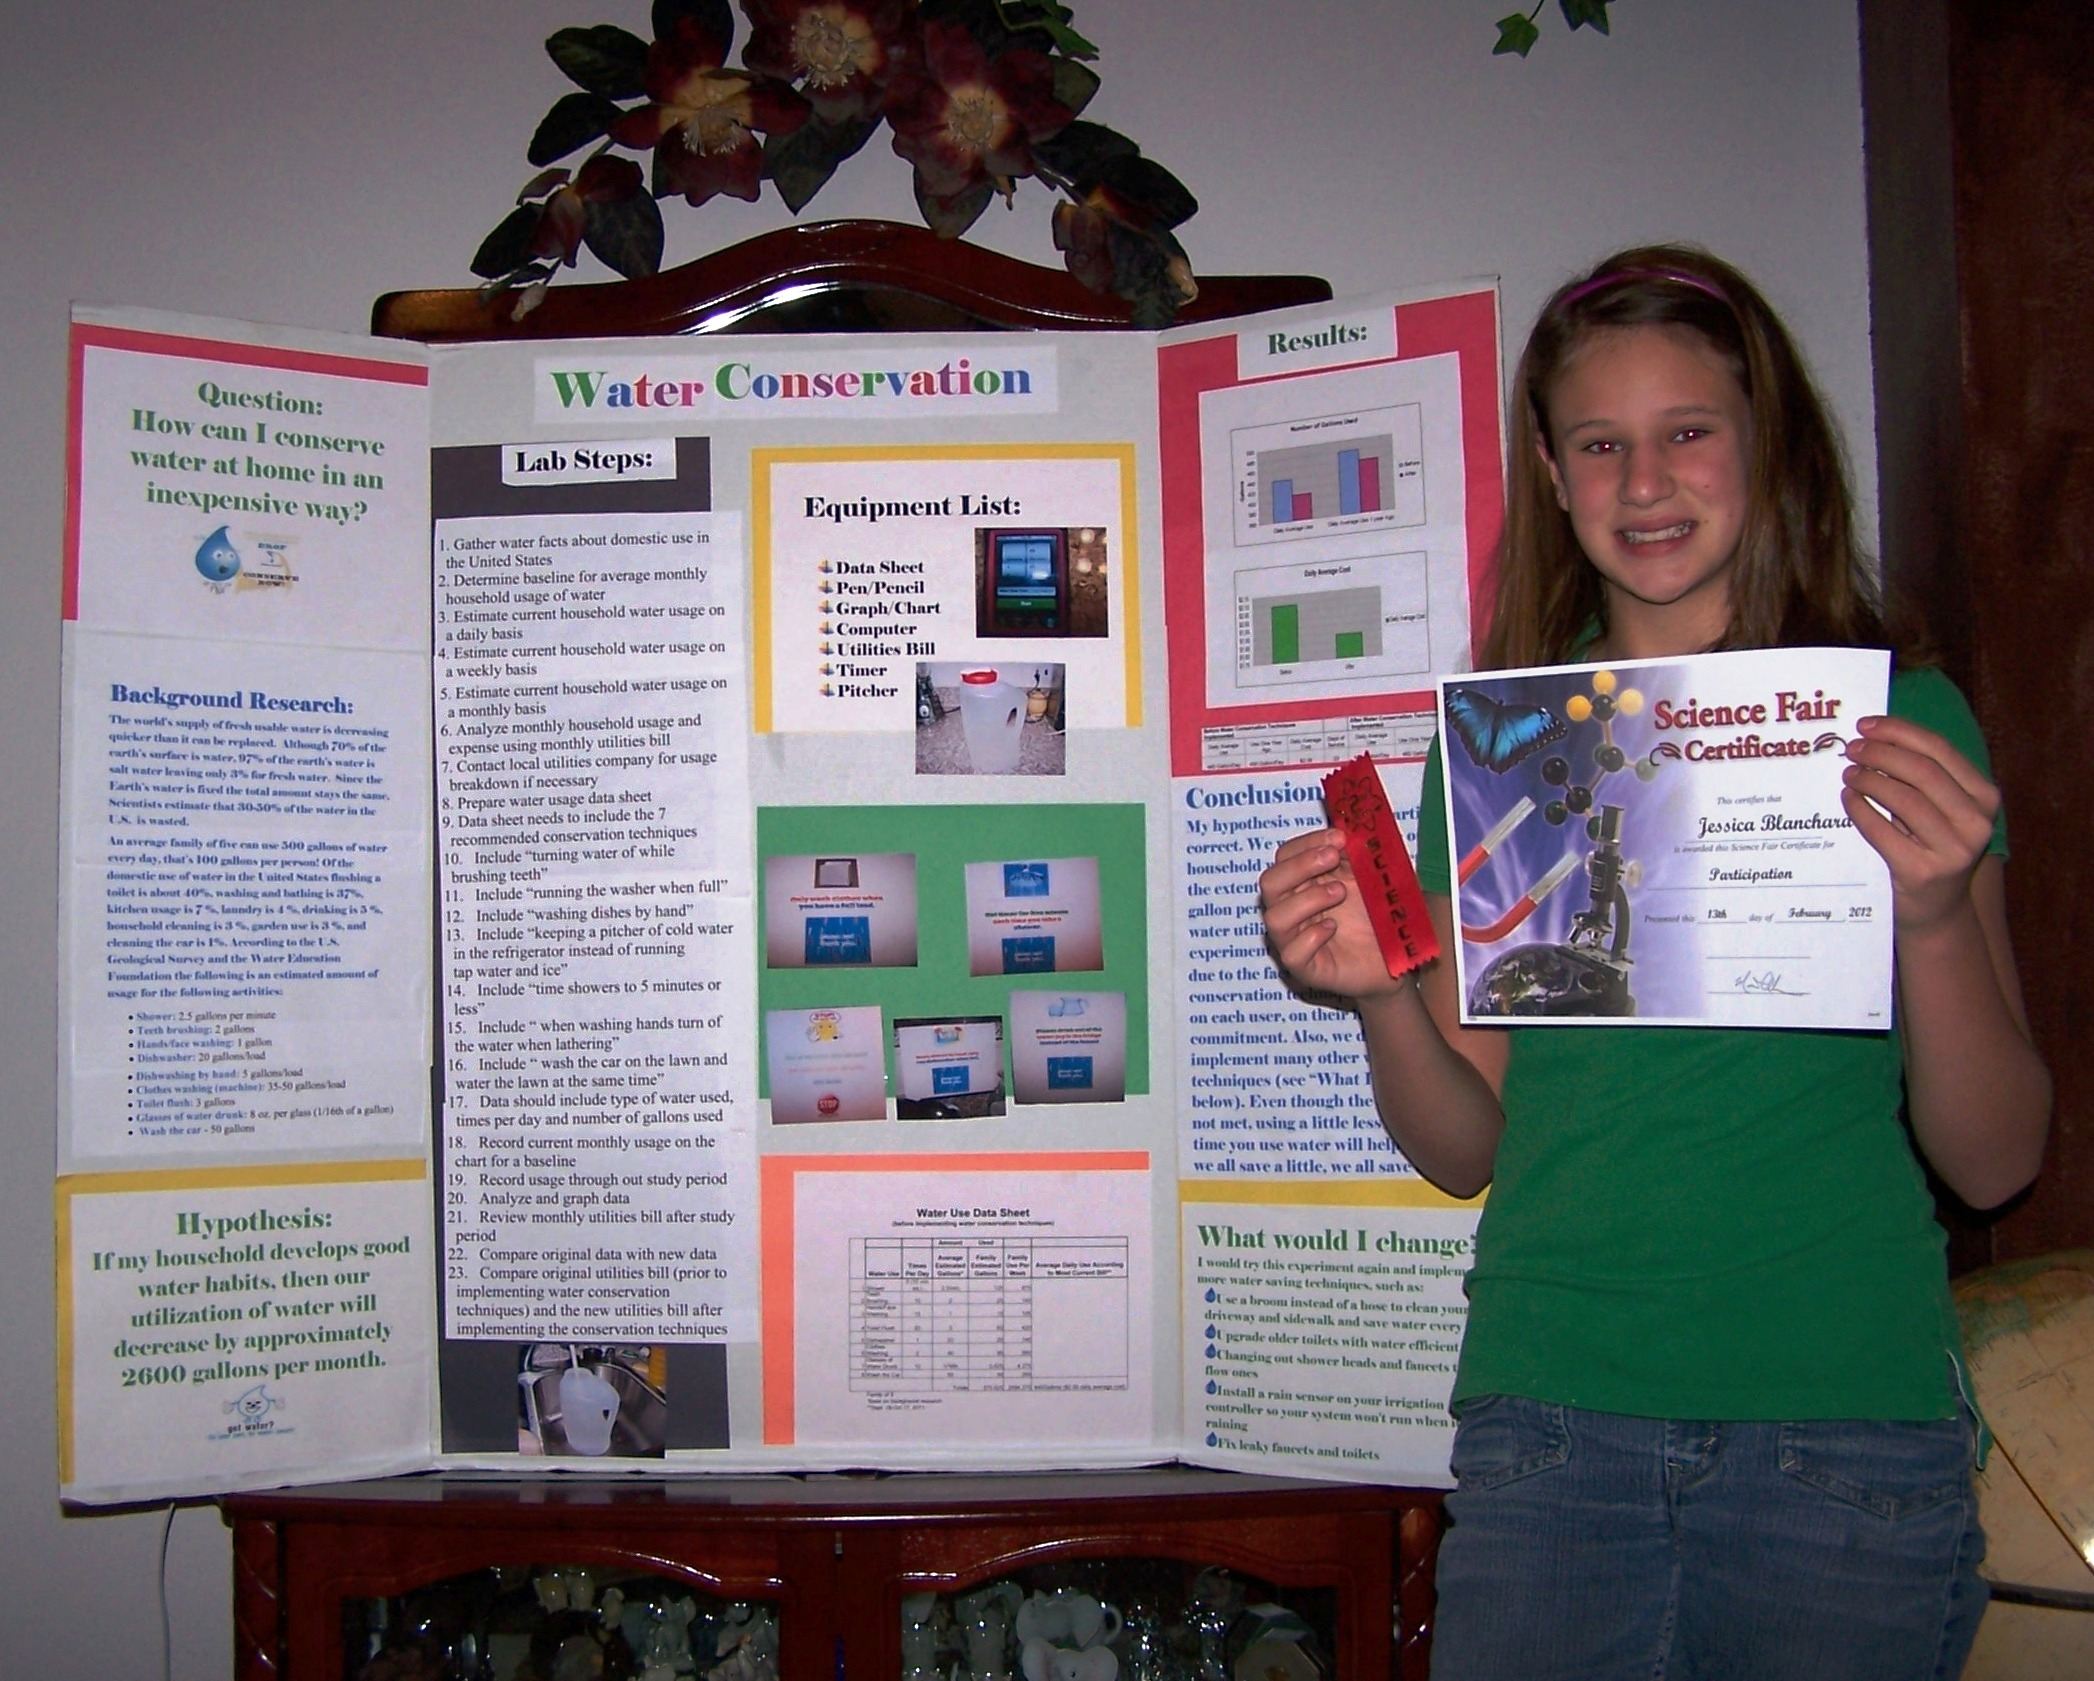 Winning Science Fair Projects For 7th Grade Jessica's award-winning ...